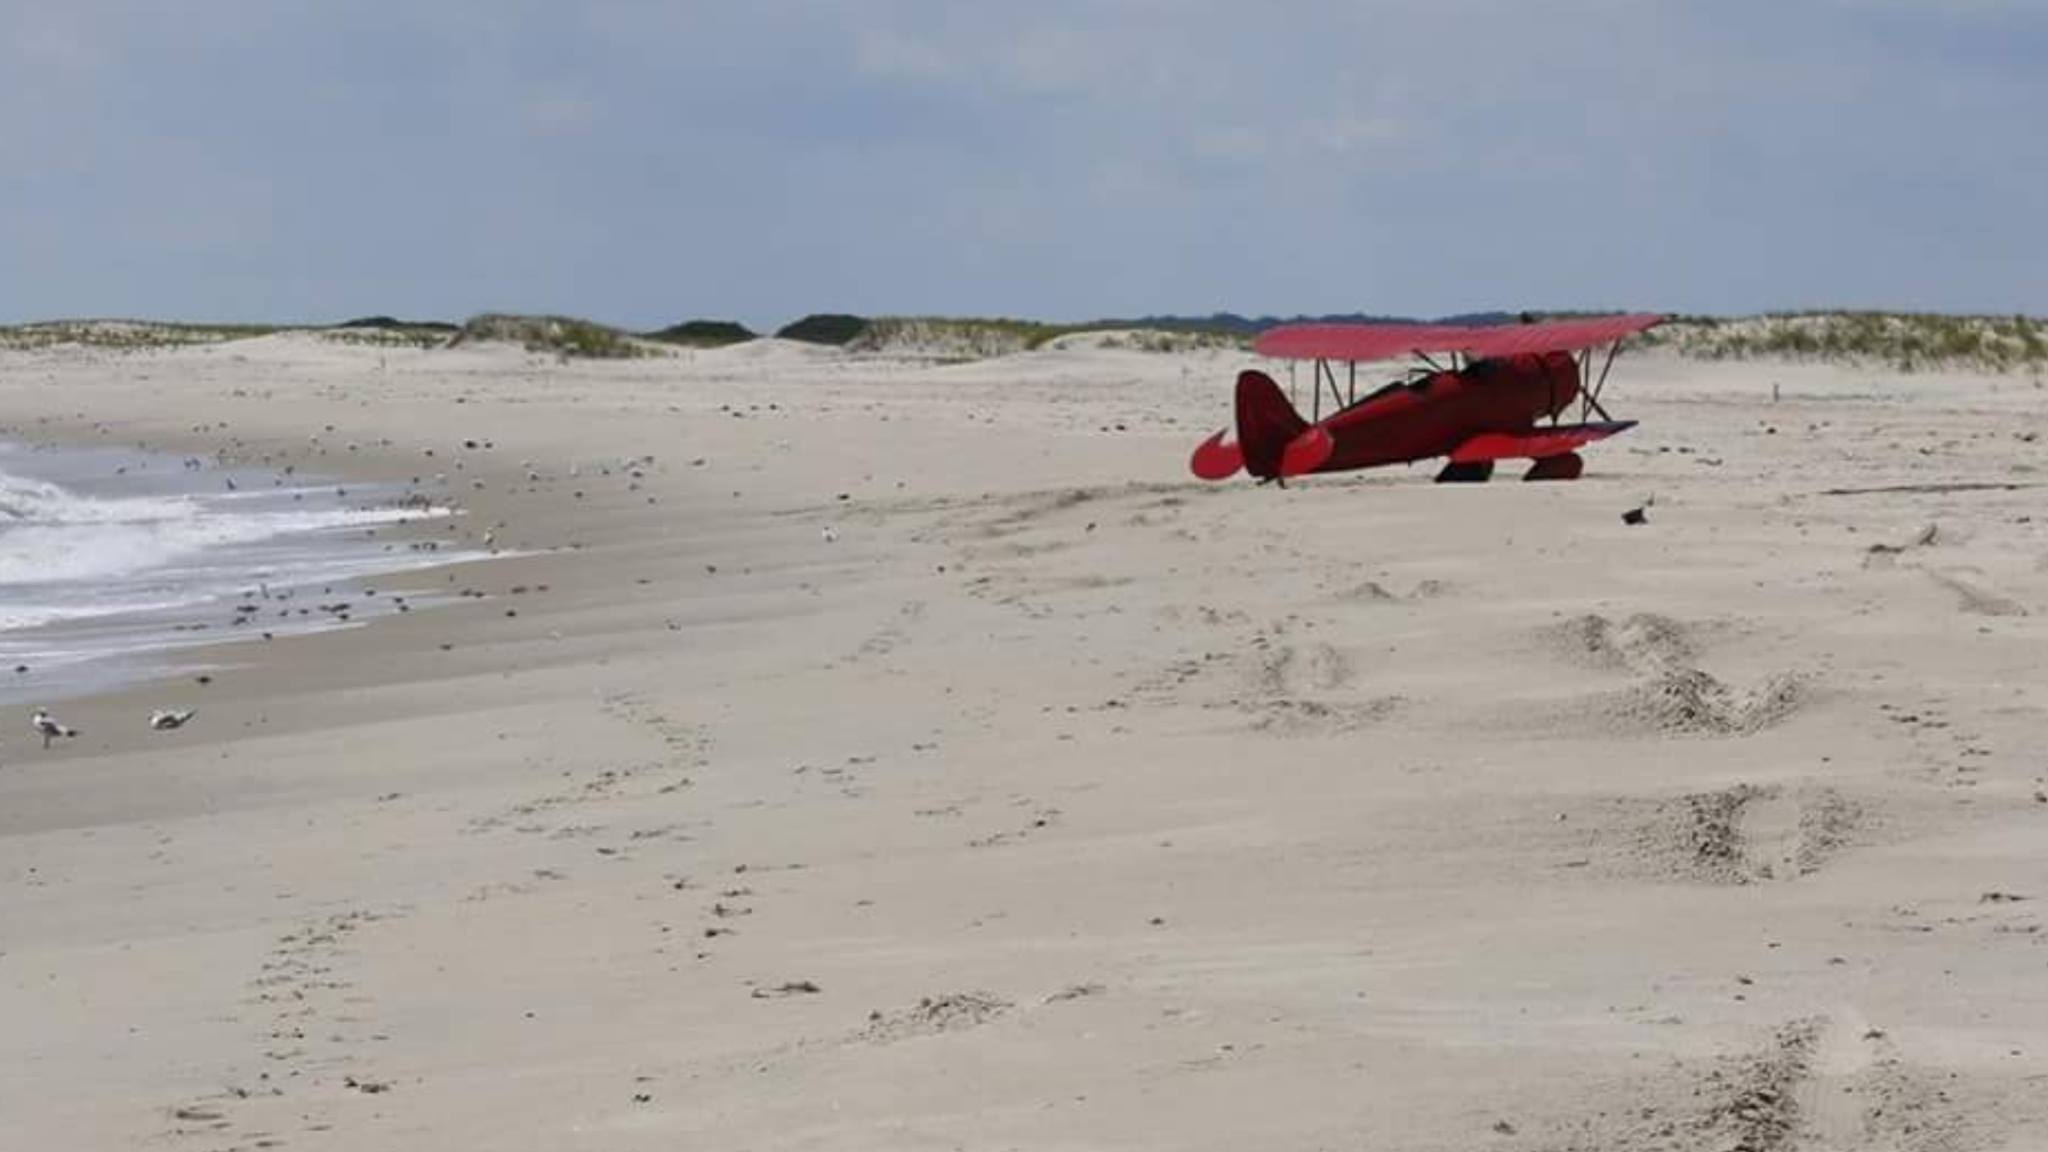 Biplane lands on assateague island delaware surf for Island beach state park fishing report